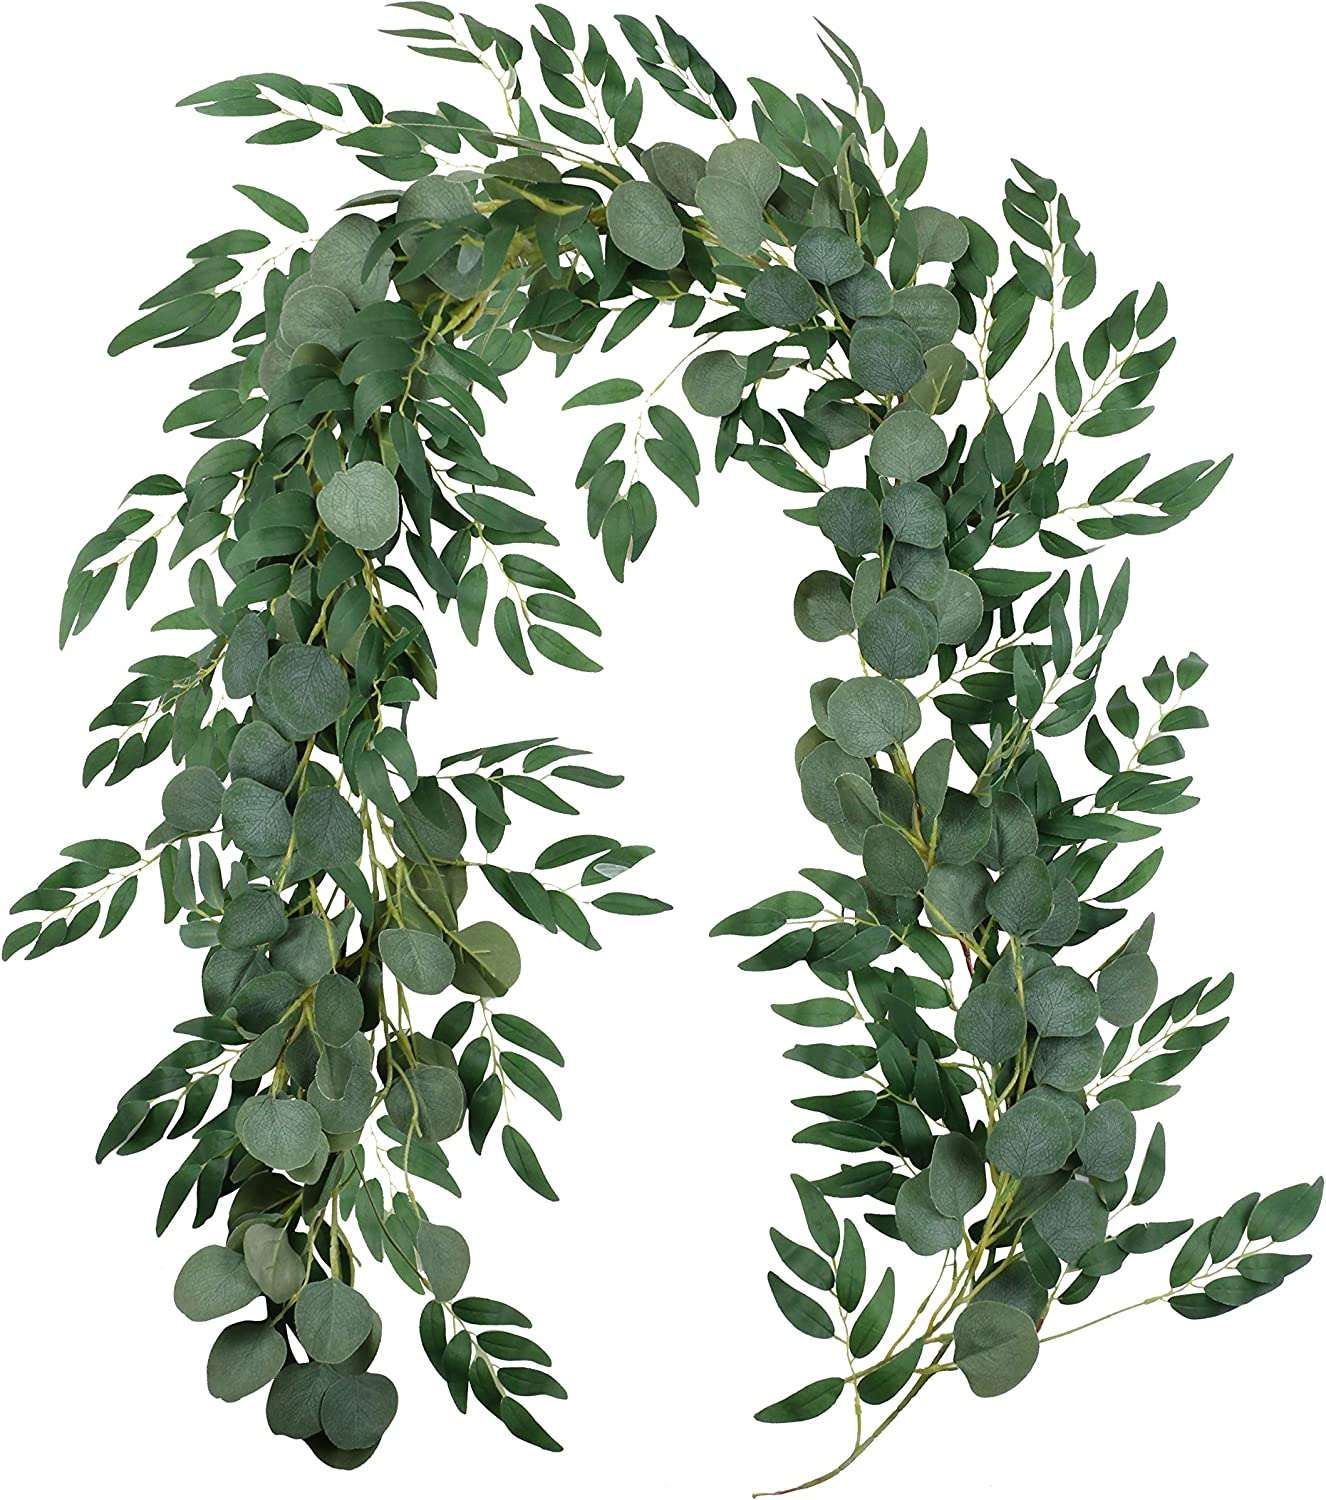 Aonewoe Artificial Eucalyptus and Willow Vines 2 Pcs Silk Faux Garland for Wedding Backdrop Arch Wall Decor Table Runner Vine